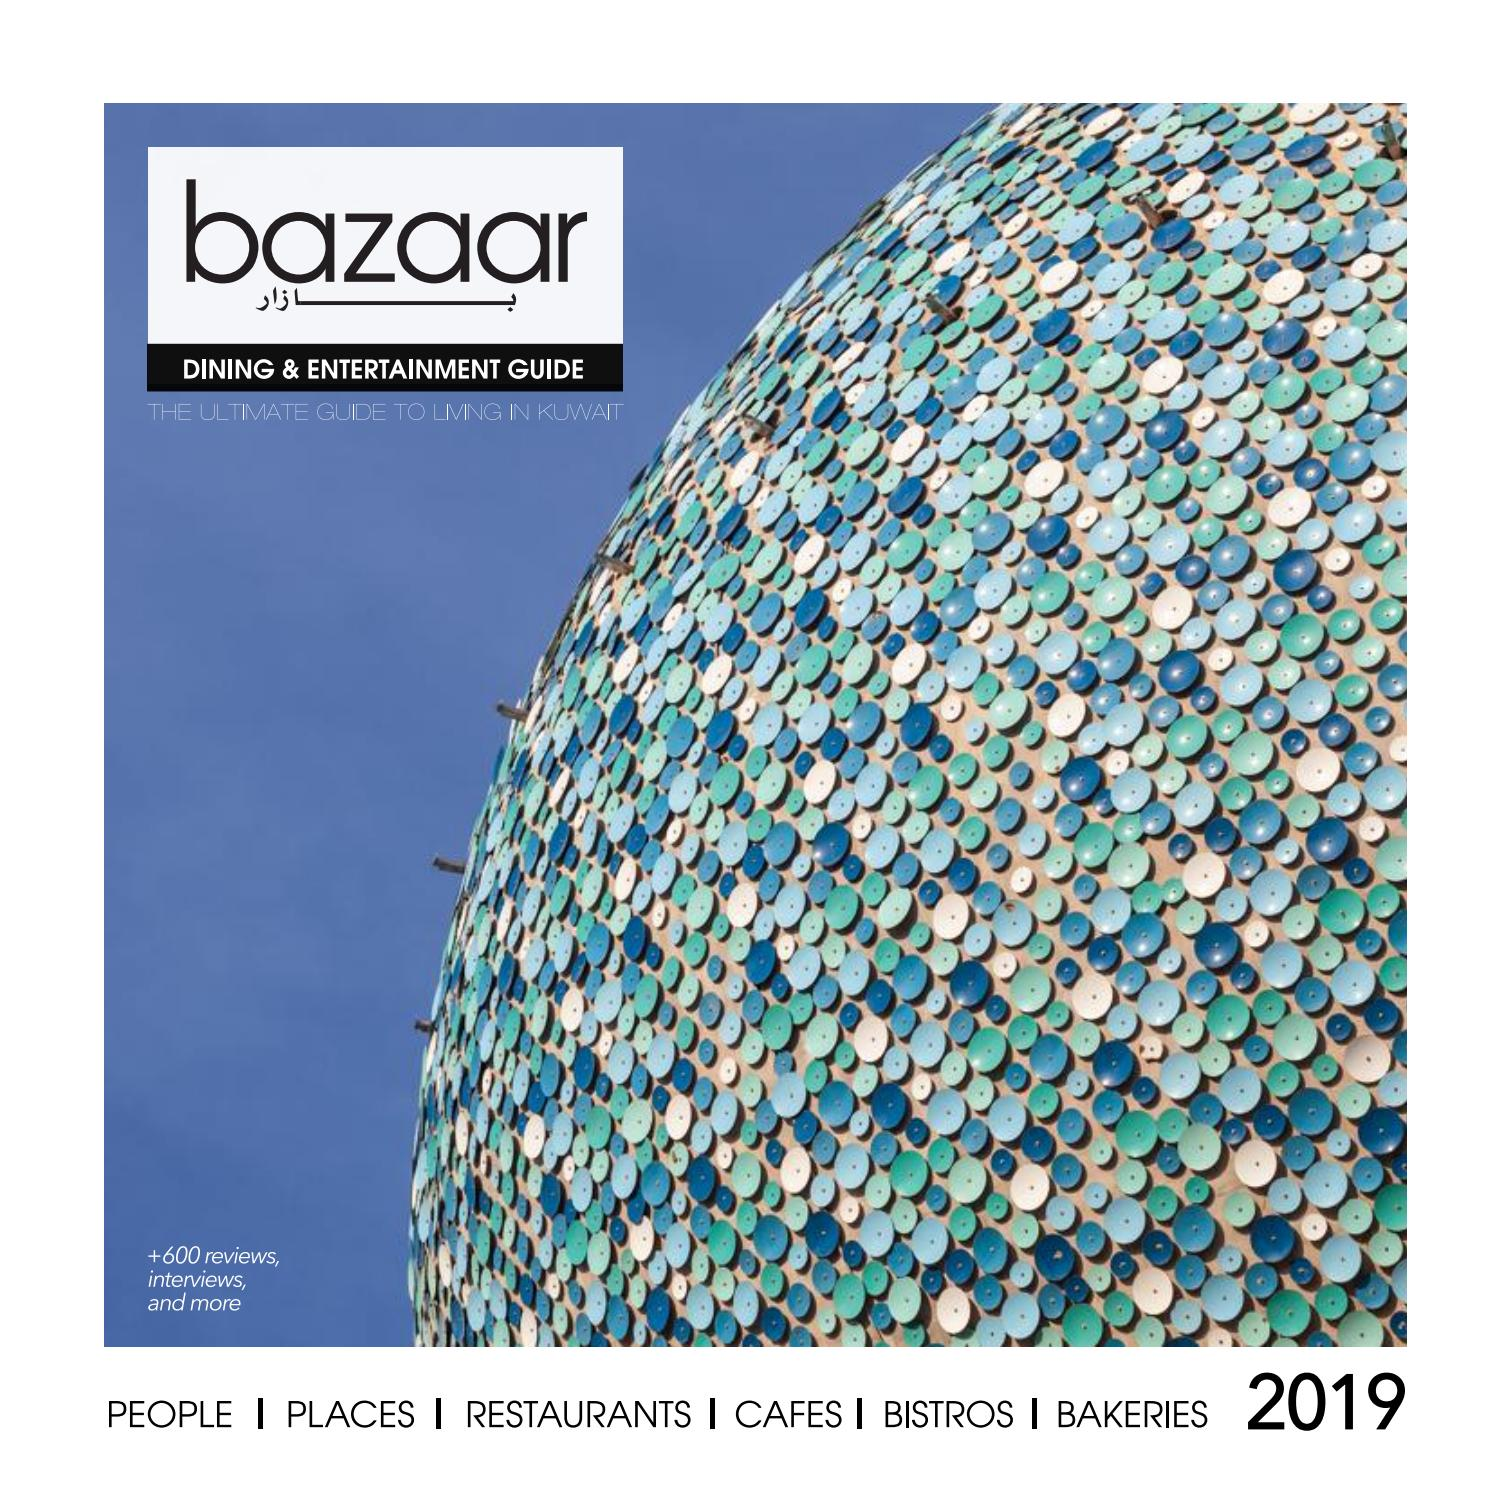 51089ad3650 2019 bazaar Dining and Entertainment Guide by bazaar magazine - issuu